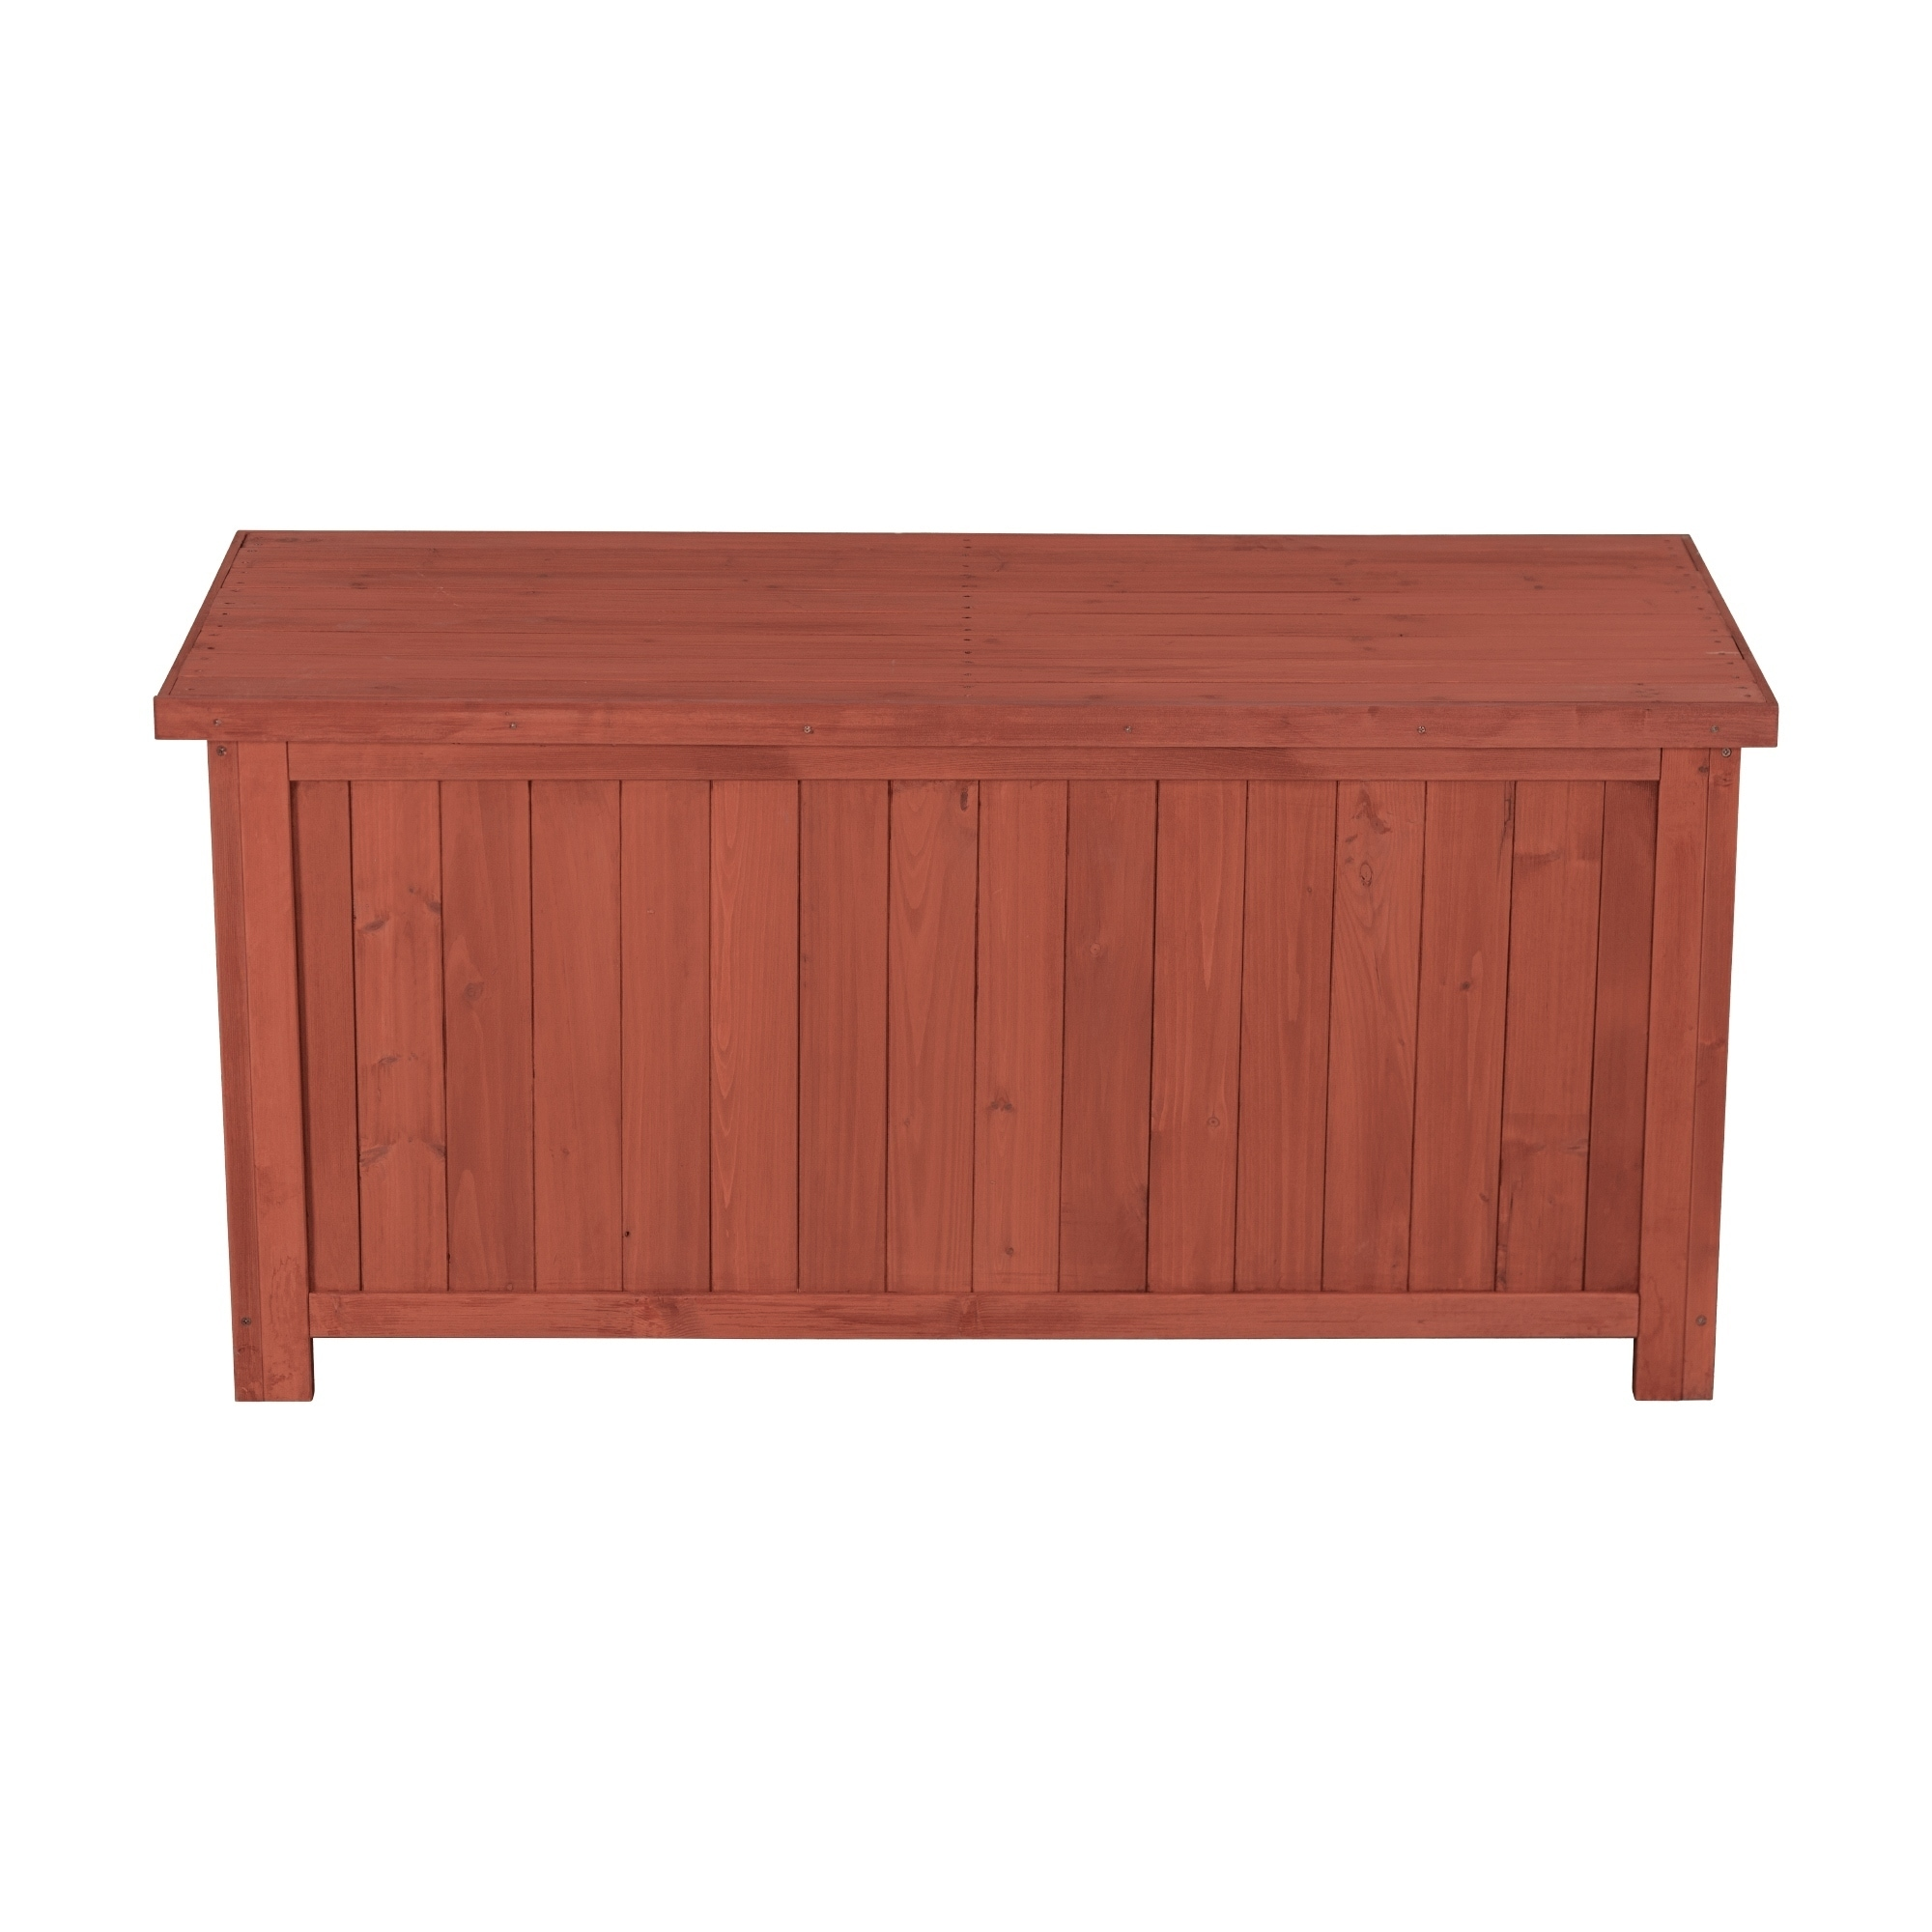 Solid Wood Deck Storage Box